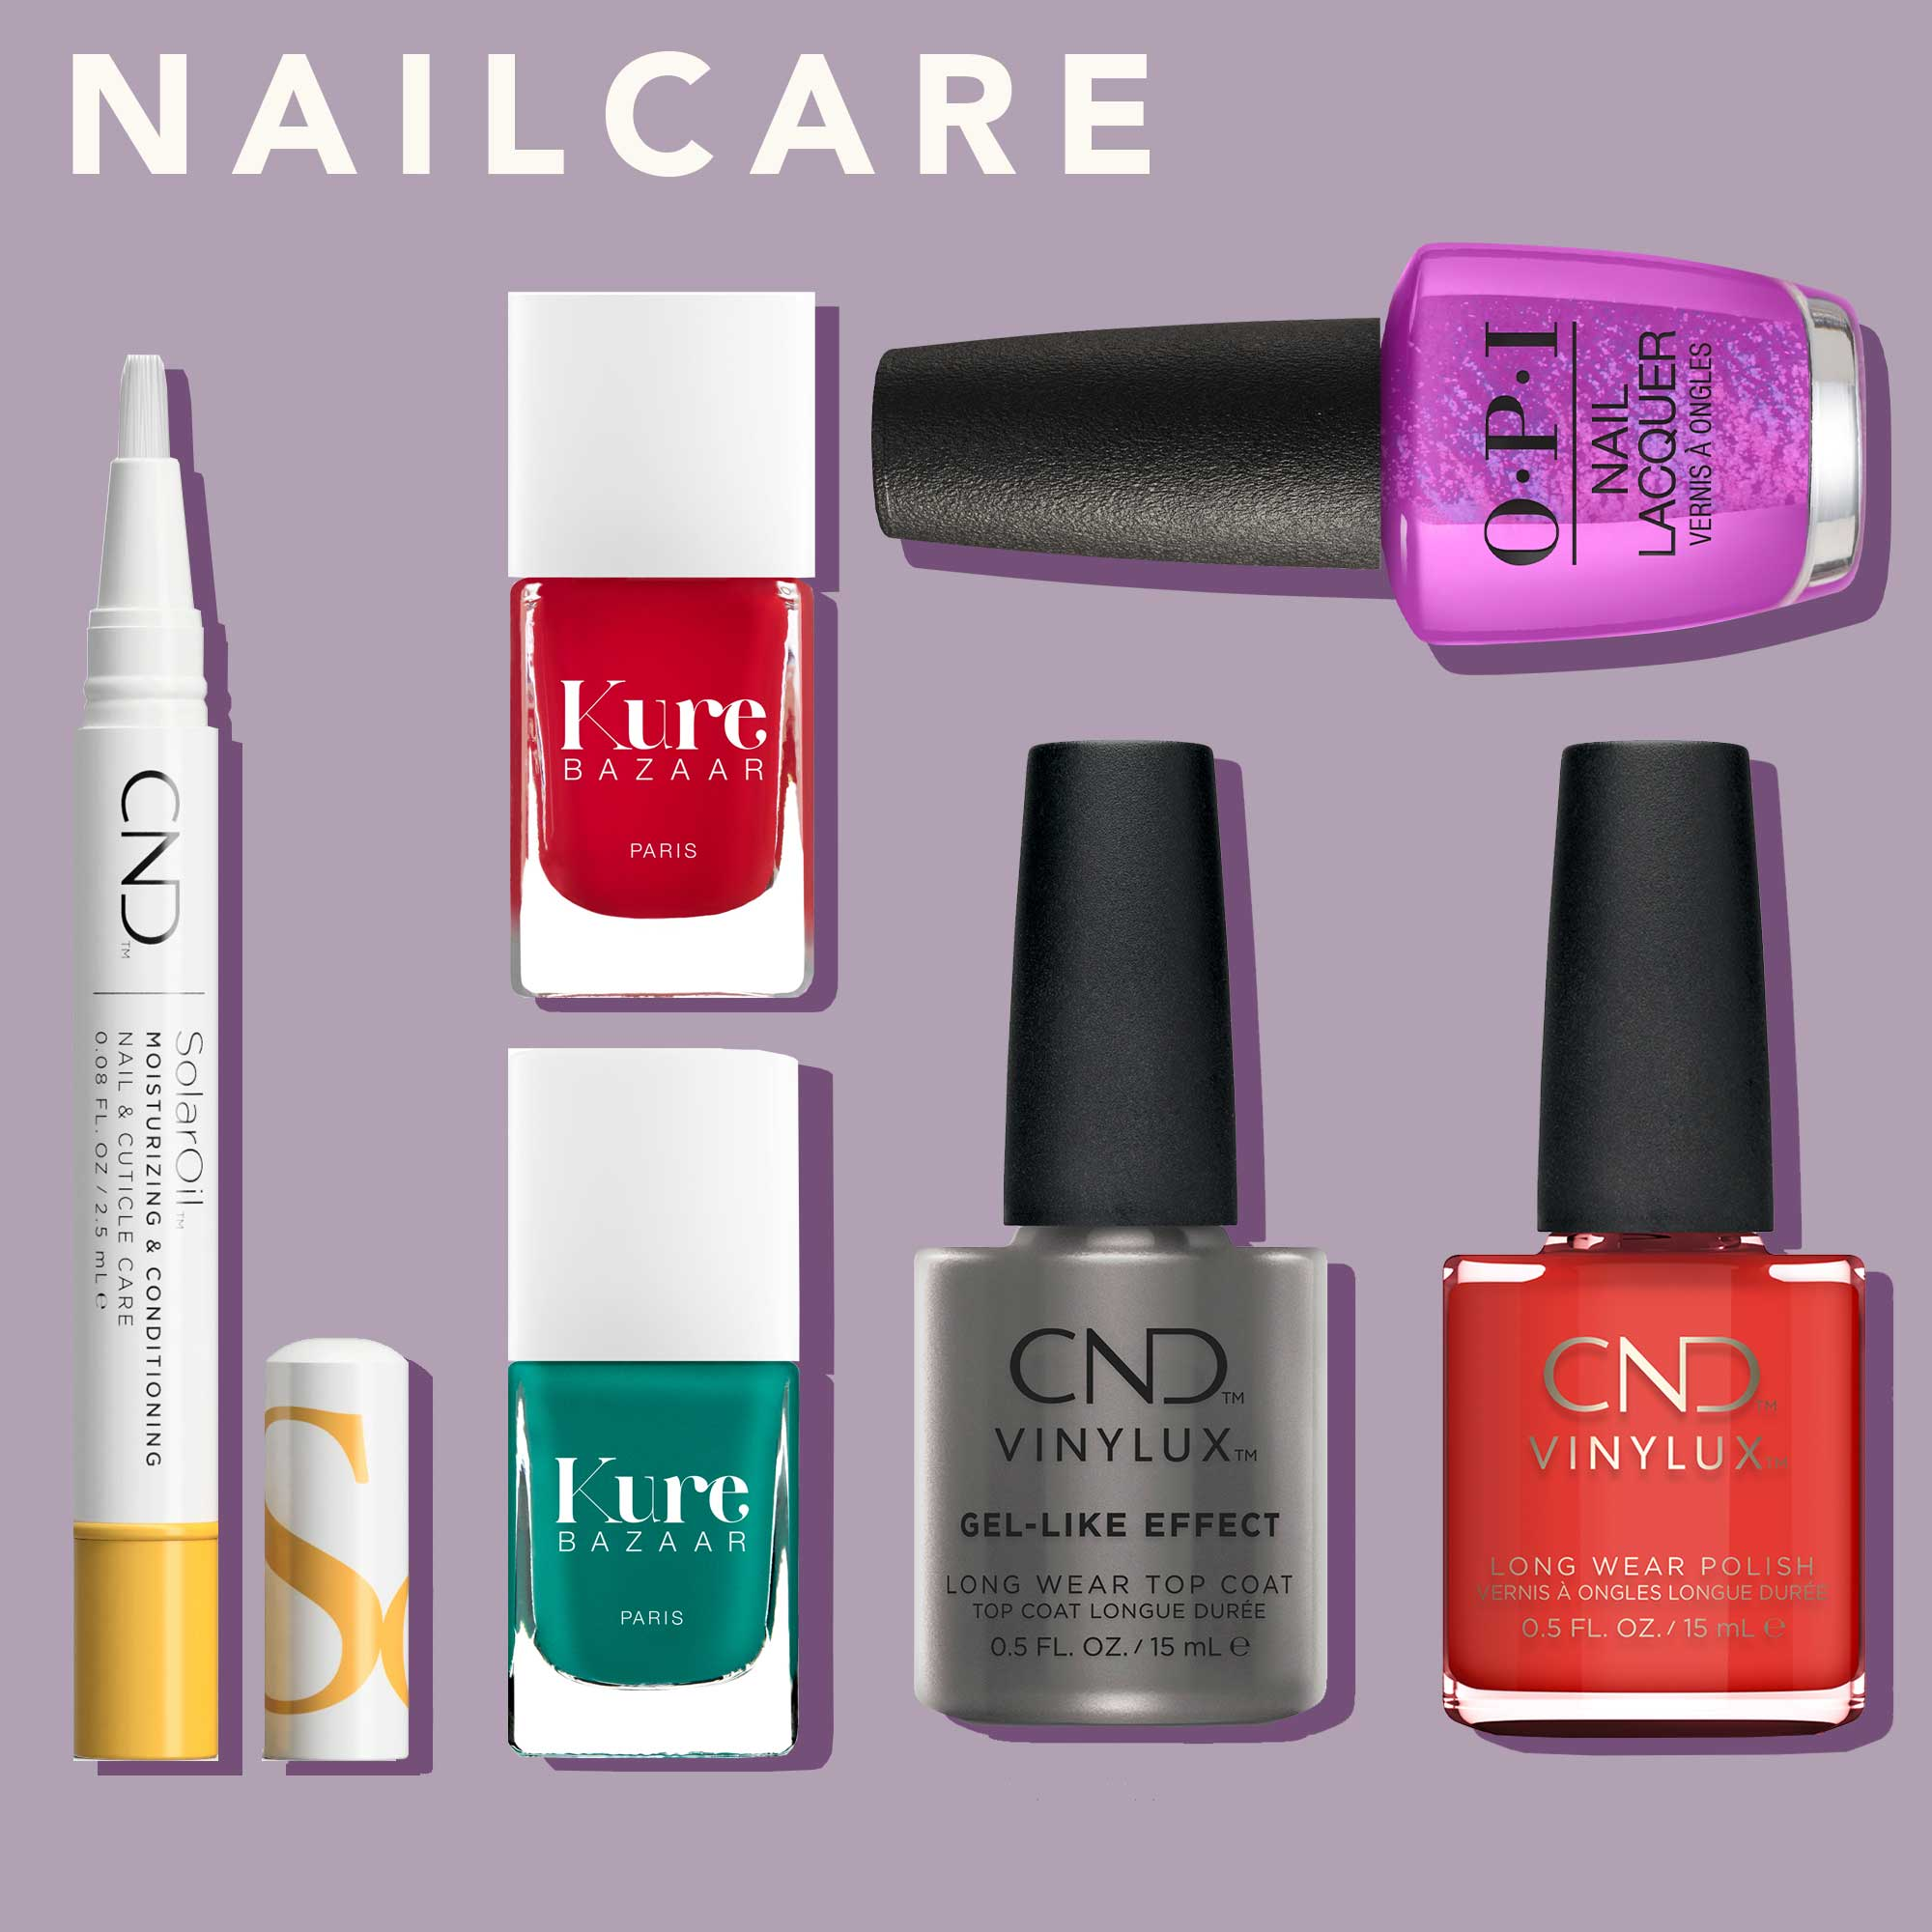 STS-CATEGORIES-FLATLAYS-NAIL